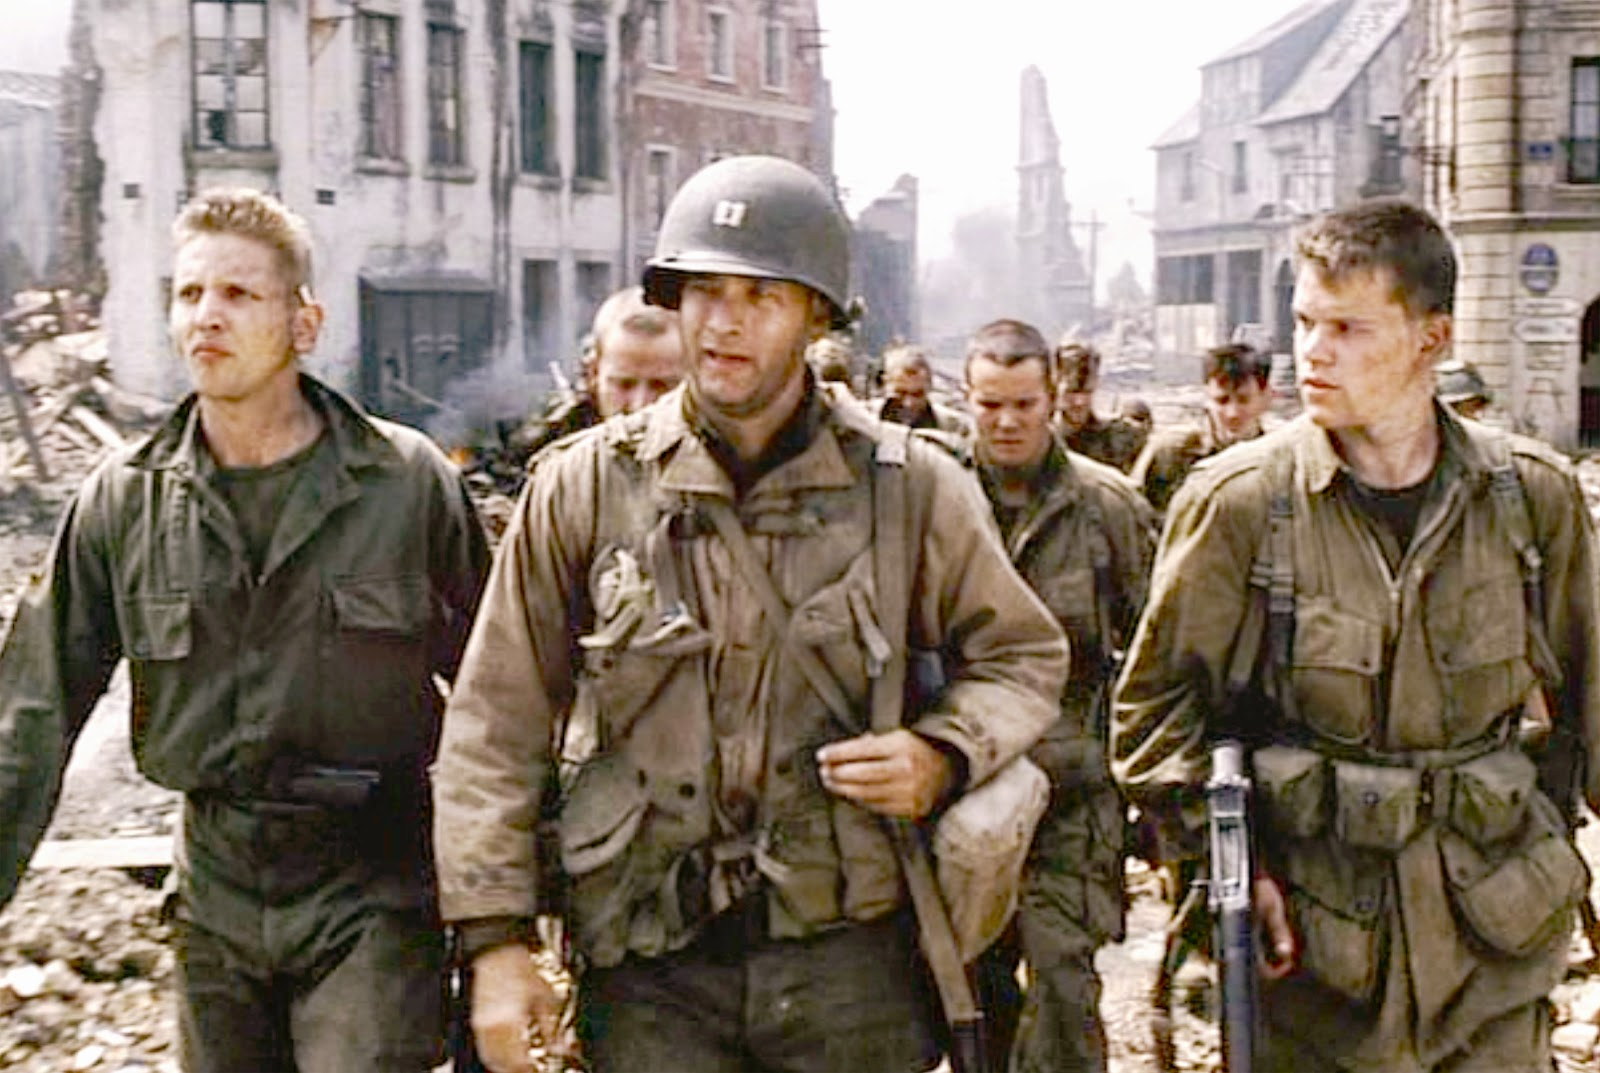 a plot summary of the world war 2 movie saving private ryan Saving private ryan is a 1998 american epic war film set during the invasion of normandy in world war ii and was directed by steven spielberg.